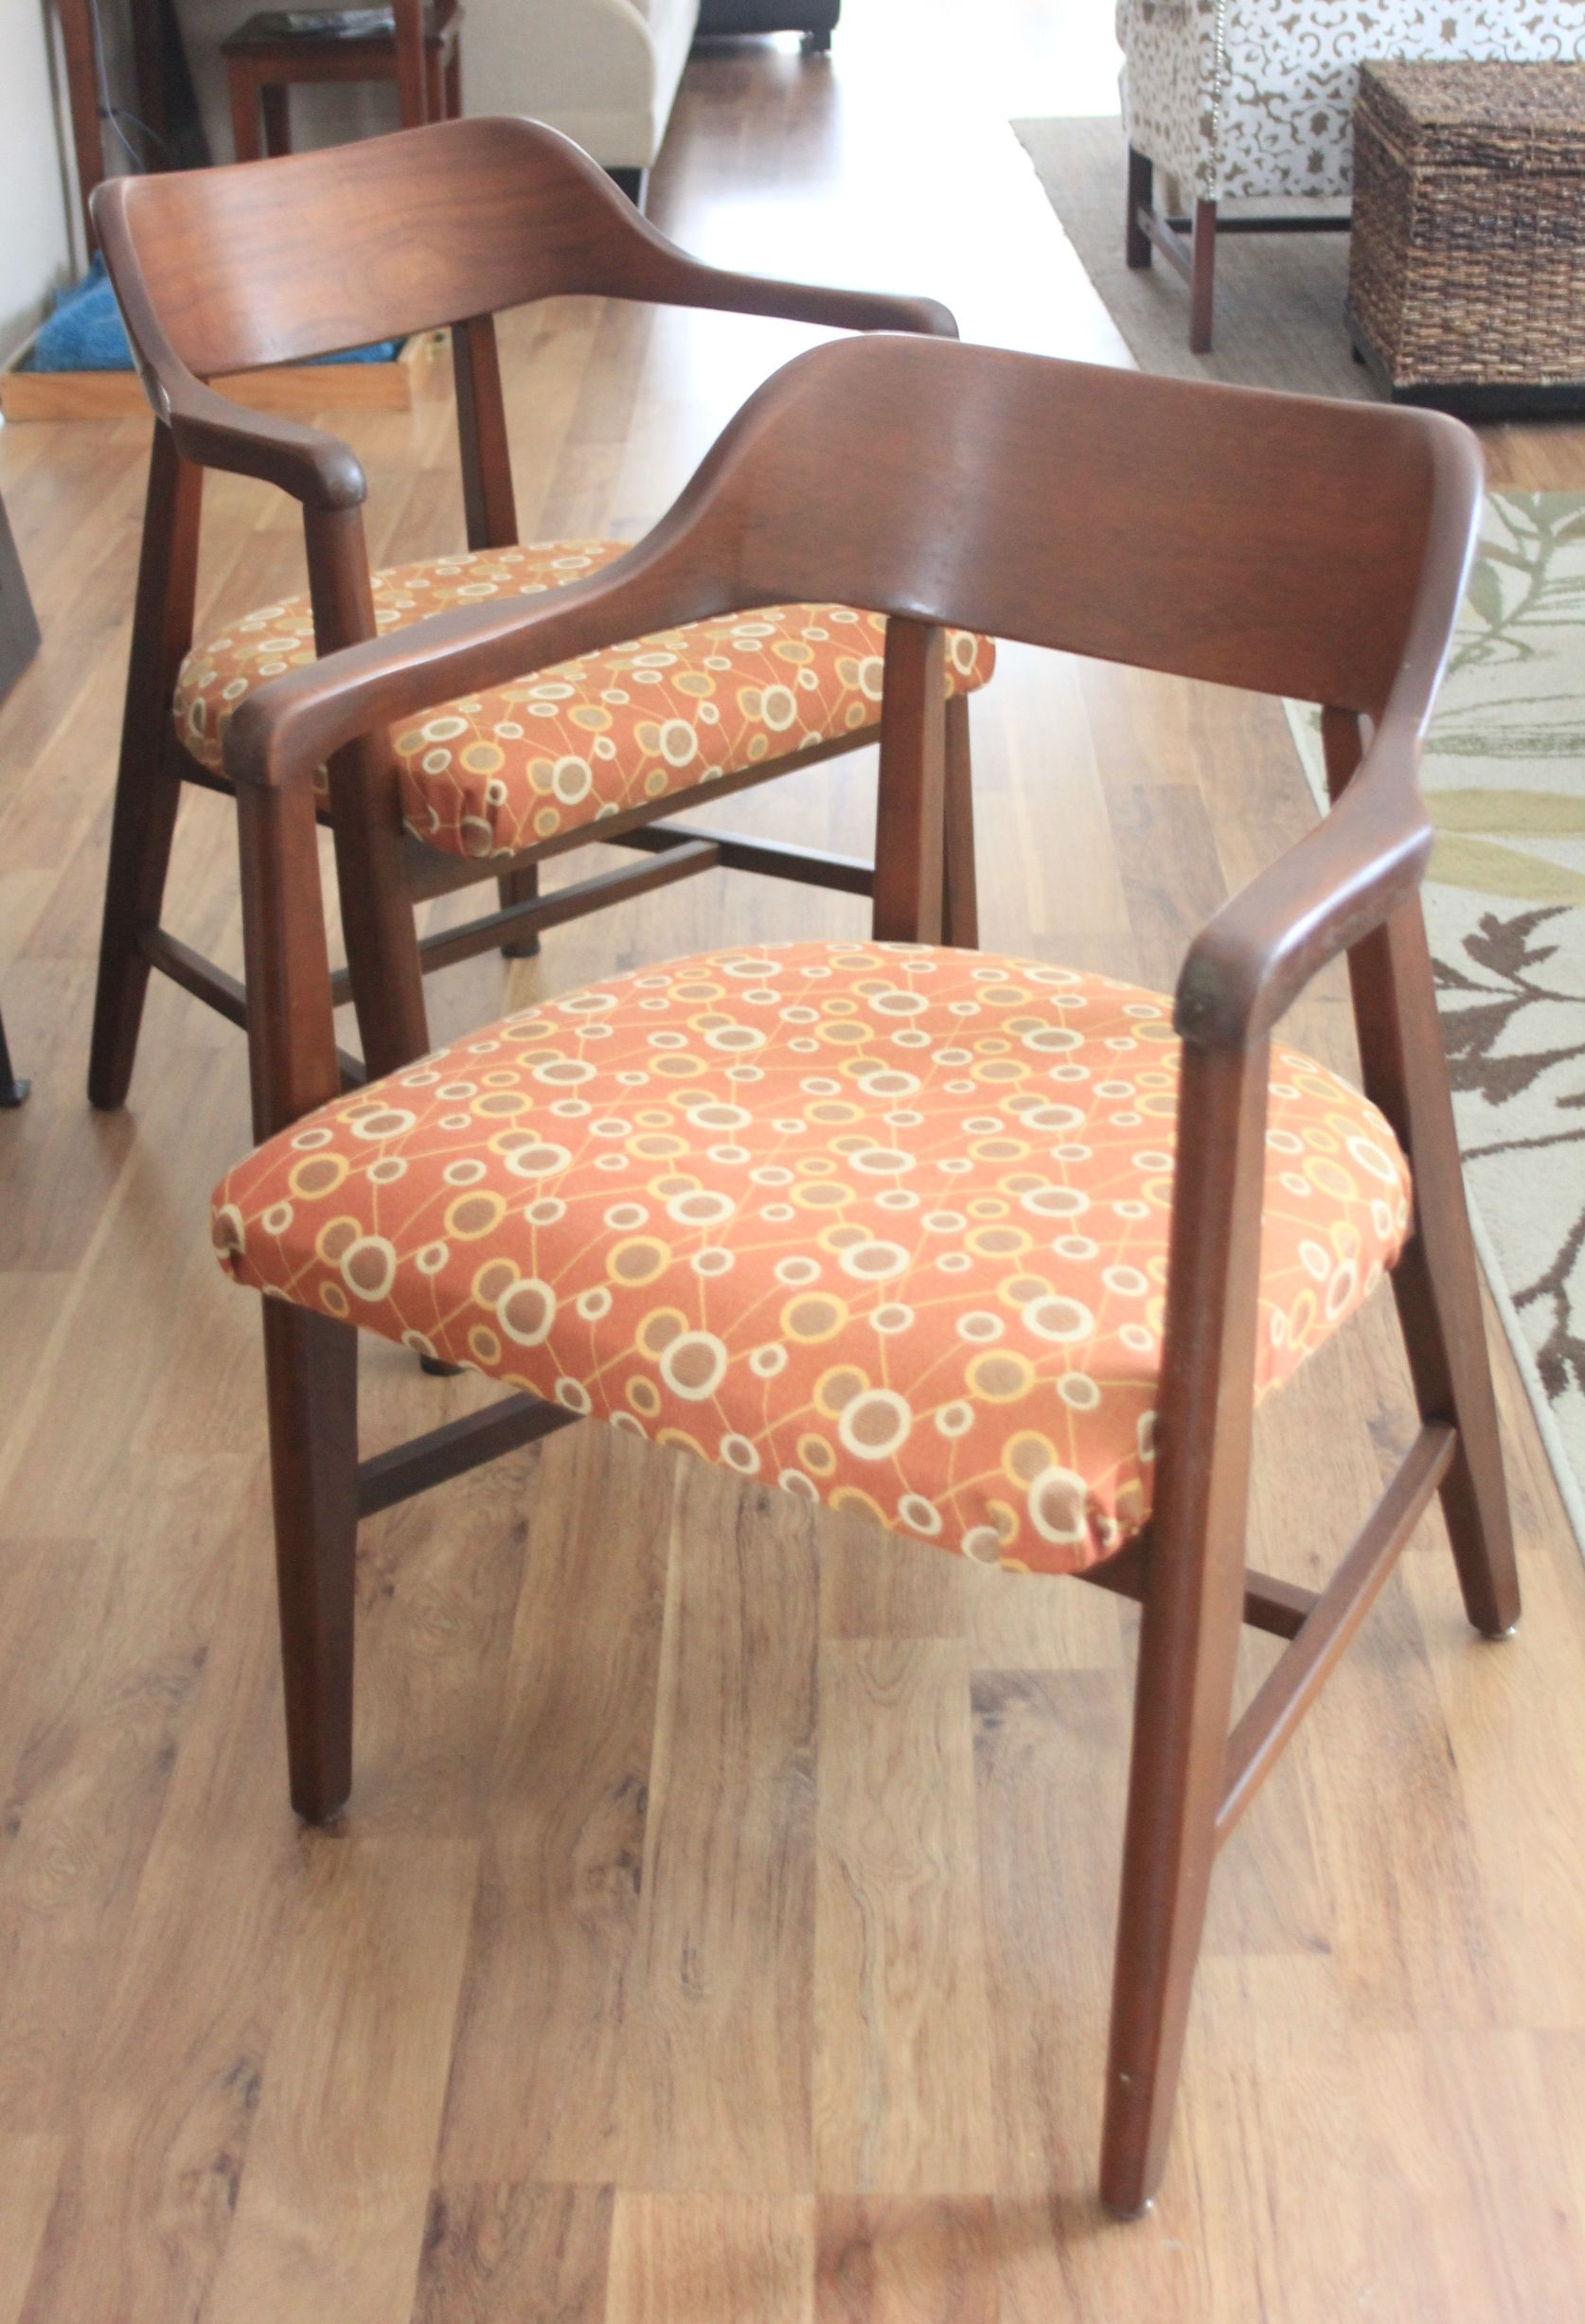 The Salvaged Boutique Has A Pair Of Mid Century Chairs For Offers Accepted In Cleveland Ohio Area This Jasper Indiana Chair